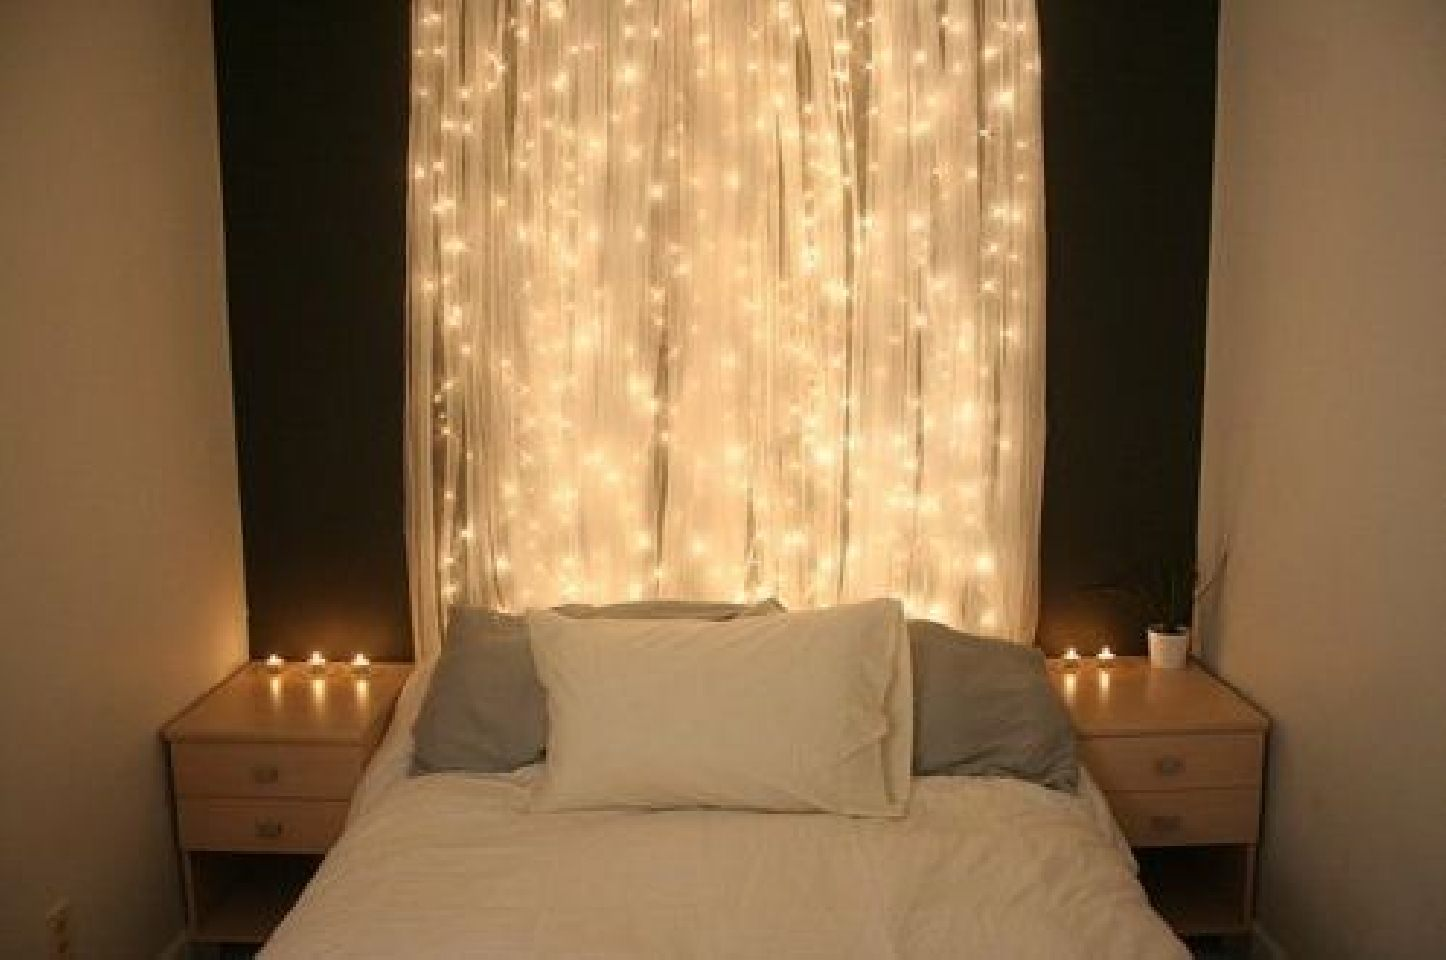 Bedroom Spotlights 30 Christmas Bedroom Decorations Ideas